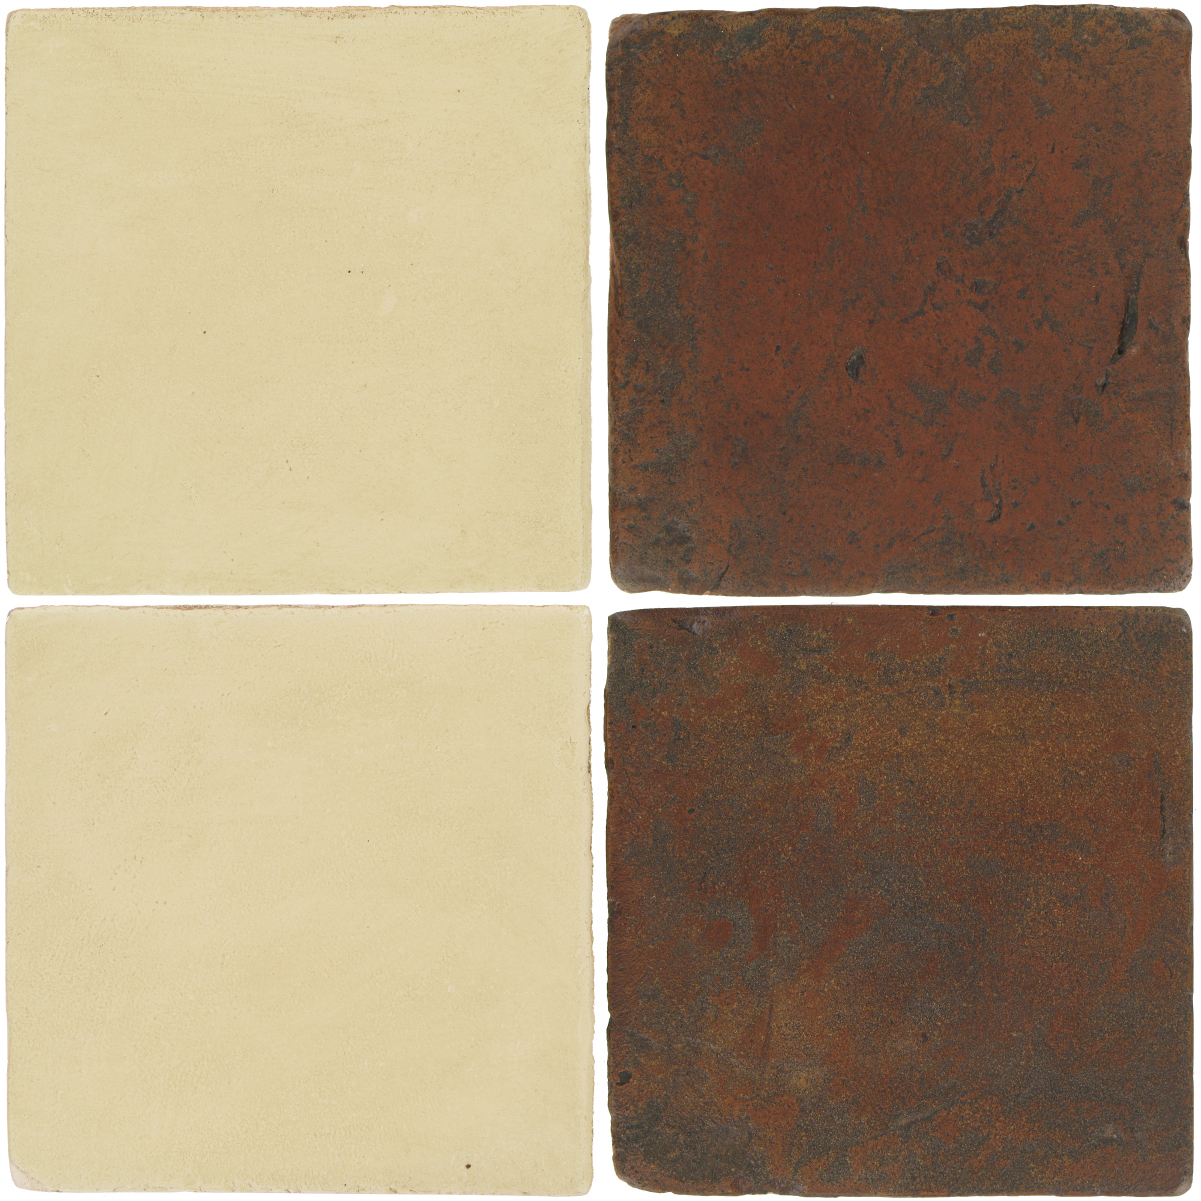 Pedralbes Antique Terracotta  2 Color Combinations  OHS-PGPW Pergamino White + VTG-PSOW Old World